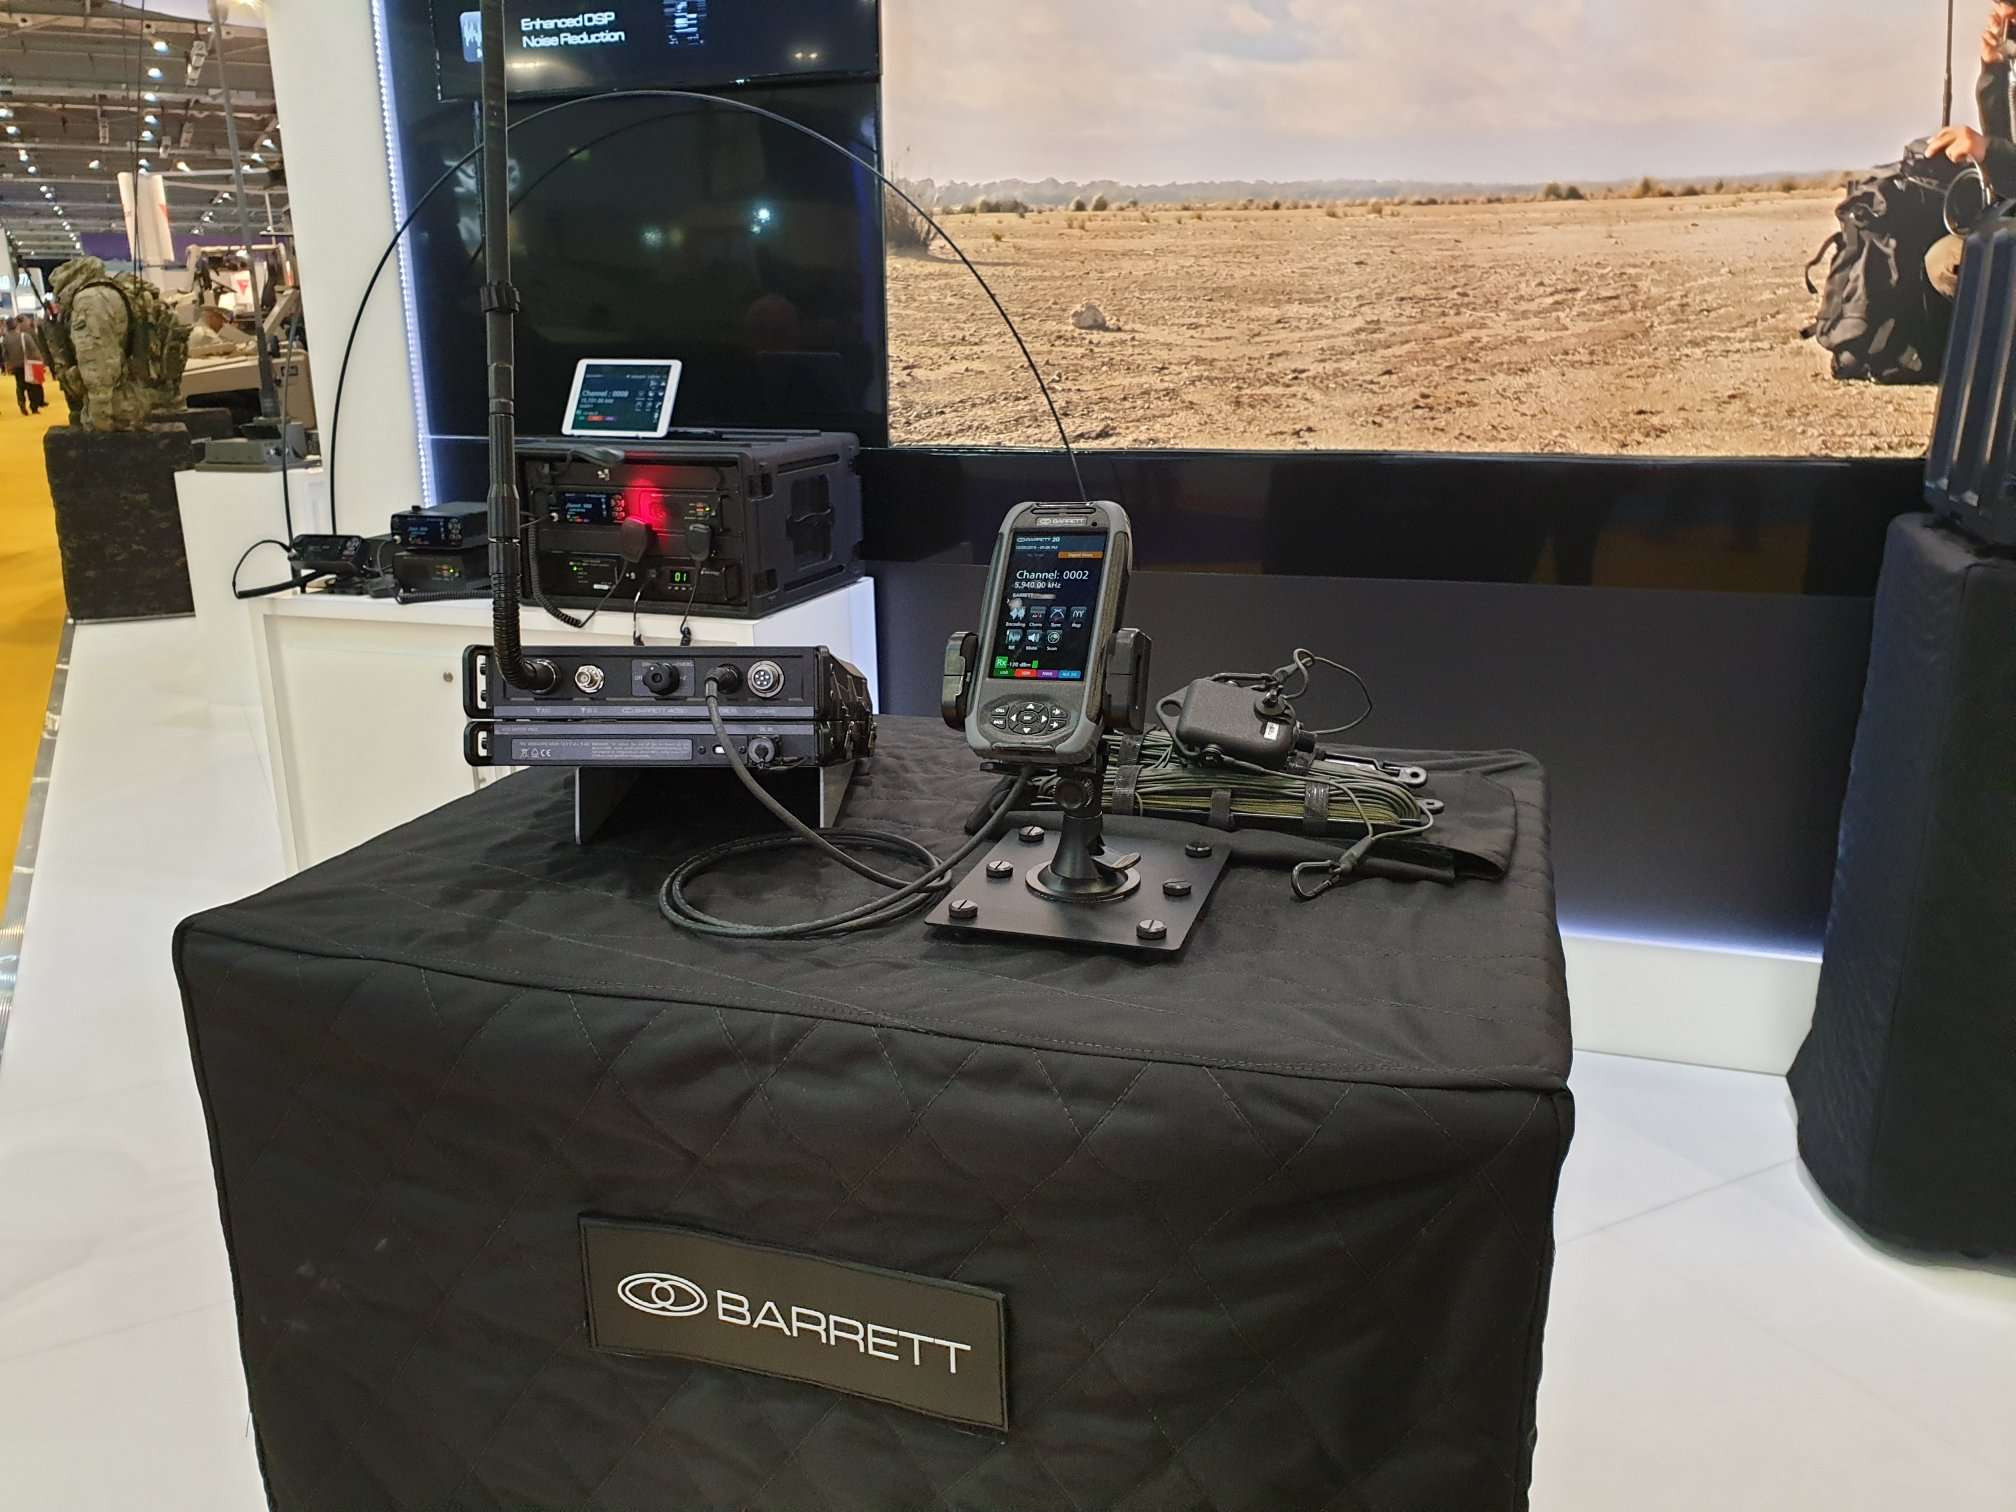 Barrett Communications DSEI 2019 London